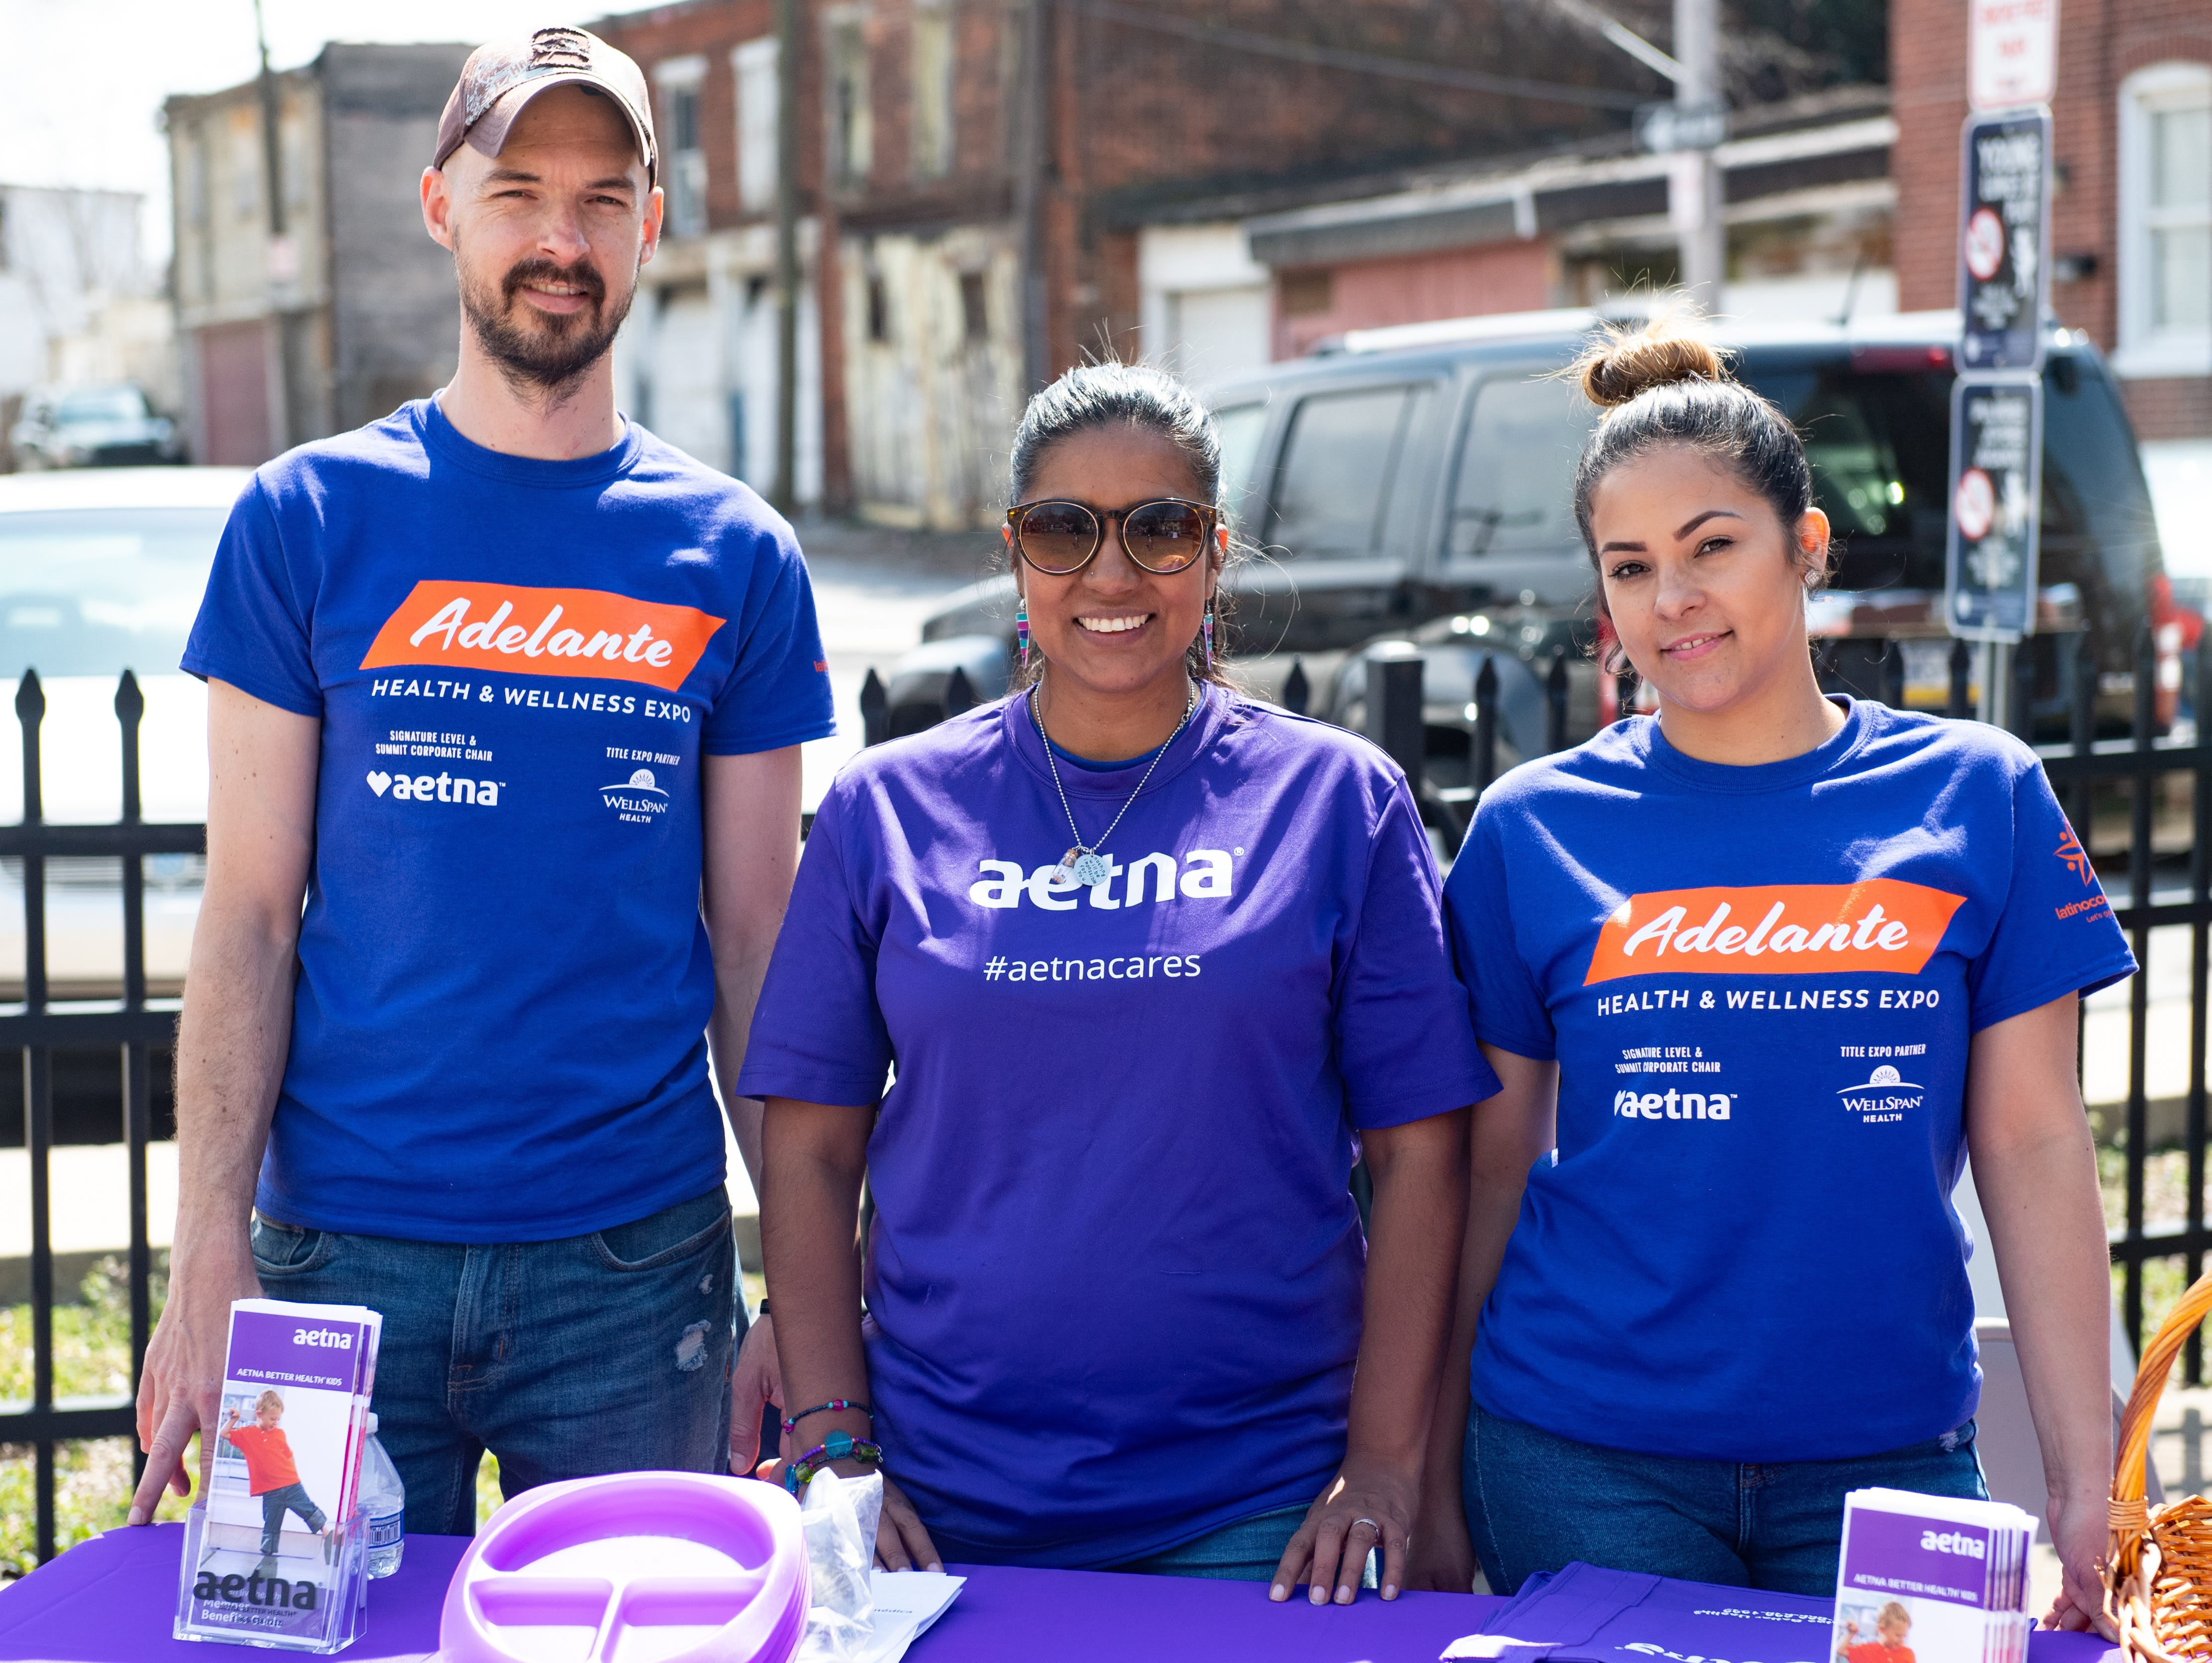 Left to right) Evan Reichley, Zuiry Gaytan and Vedsaida Lorenzo work the Aetna booth during the Adelante Festival at Renaissance Park, March 30, 2019.